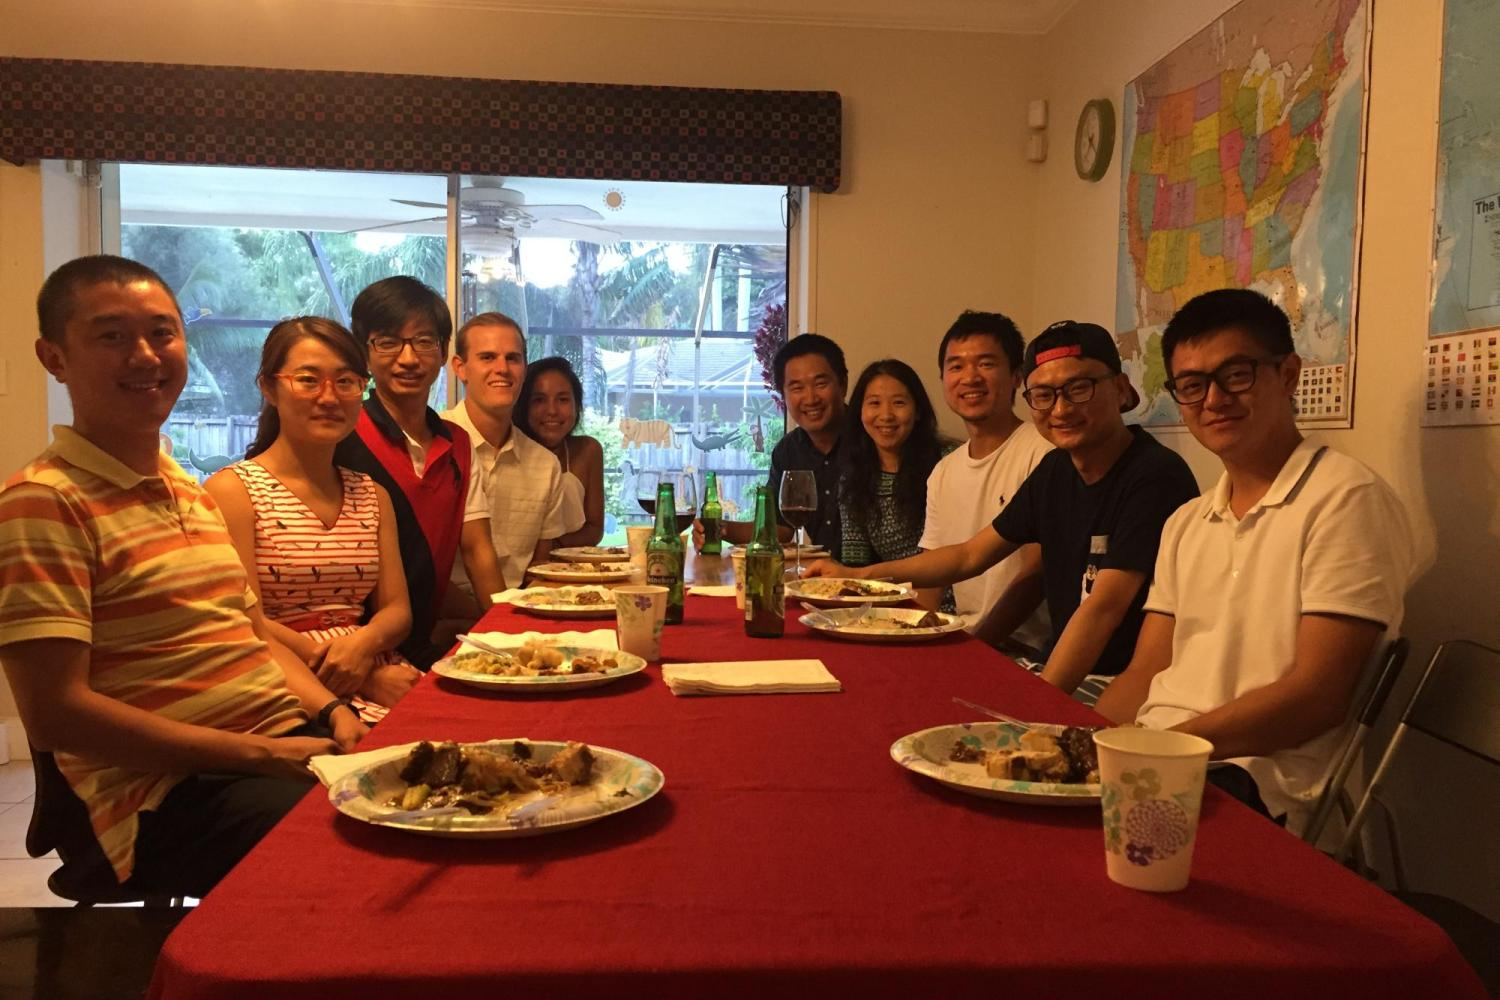 Group dinner at Dr. Zuo's house